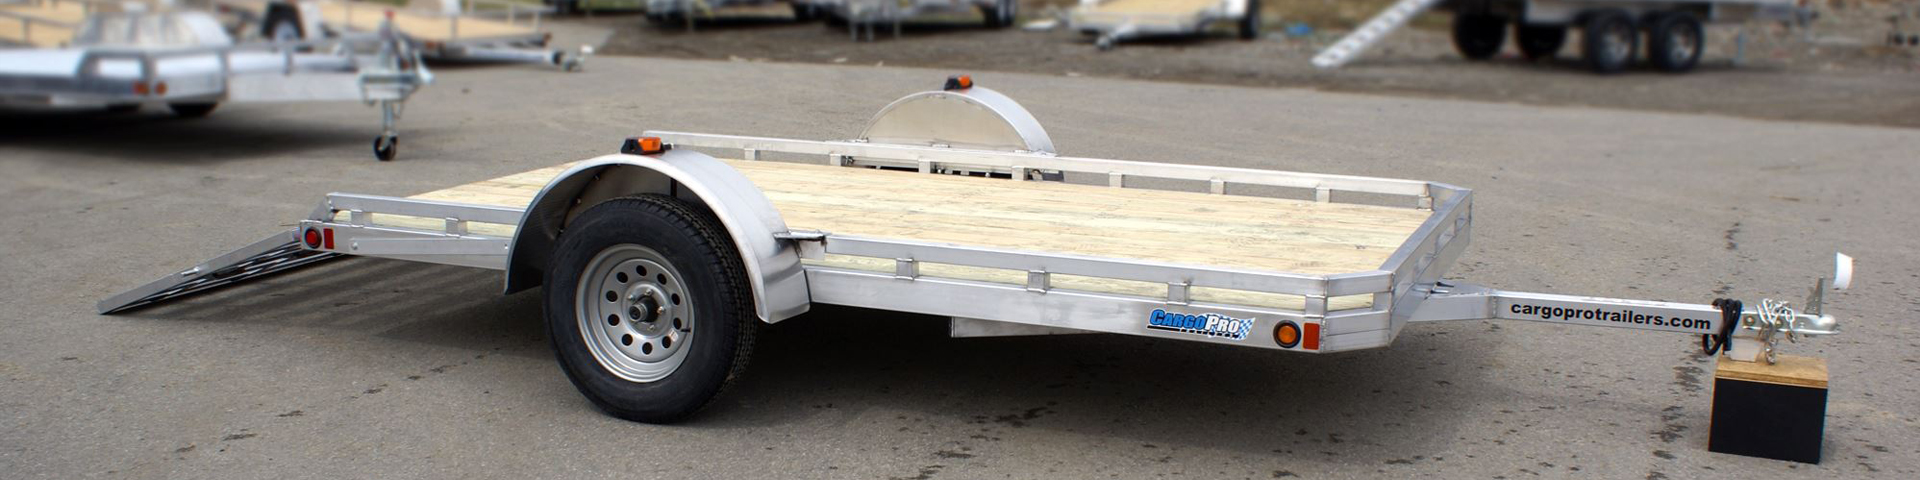 Home | Team One Trailers | Flatbed Trailers, Utility